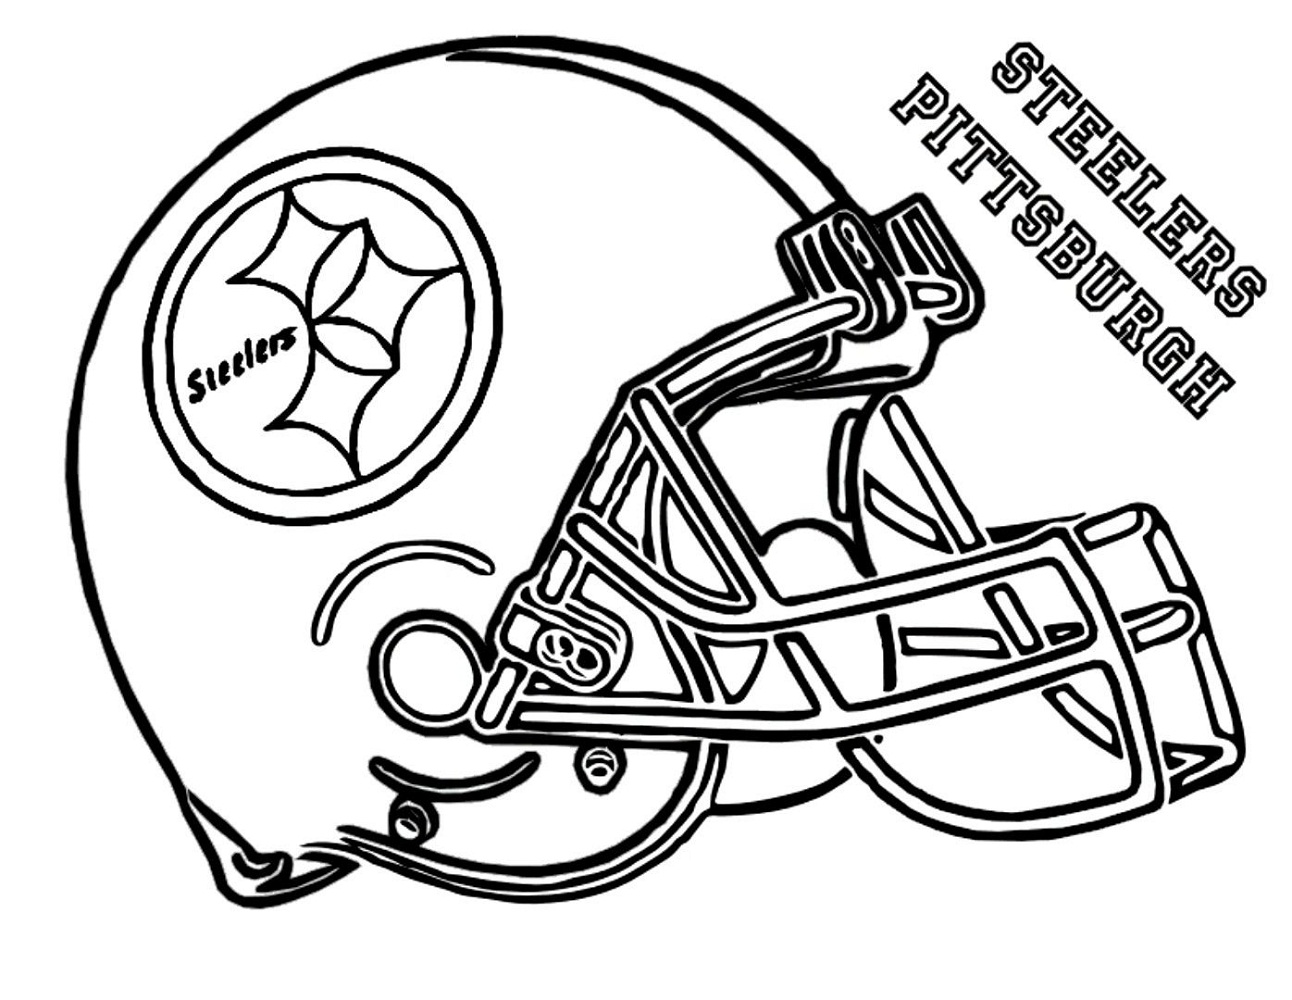 steeler coloring pages pittsburgh steelers coloring pages coloring home stop steeler coloring pages